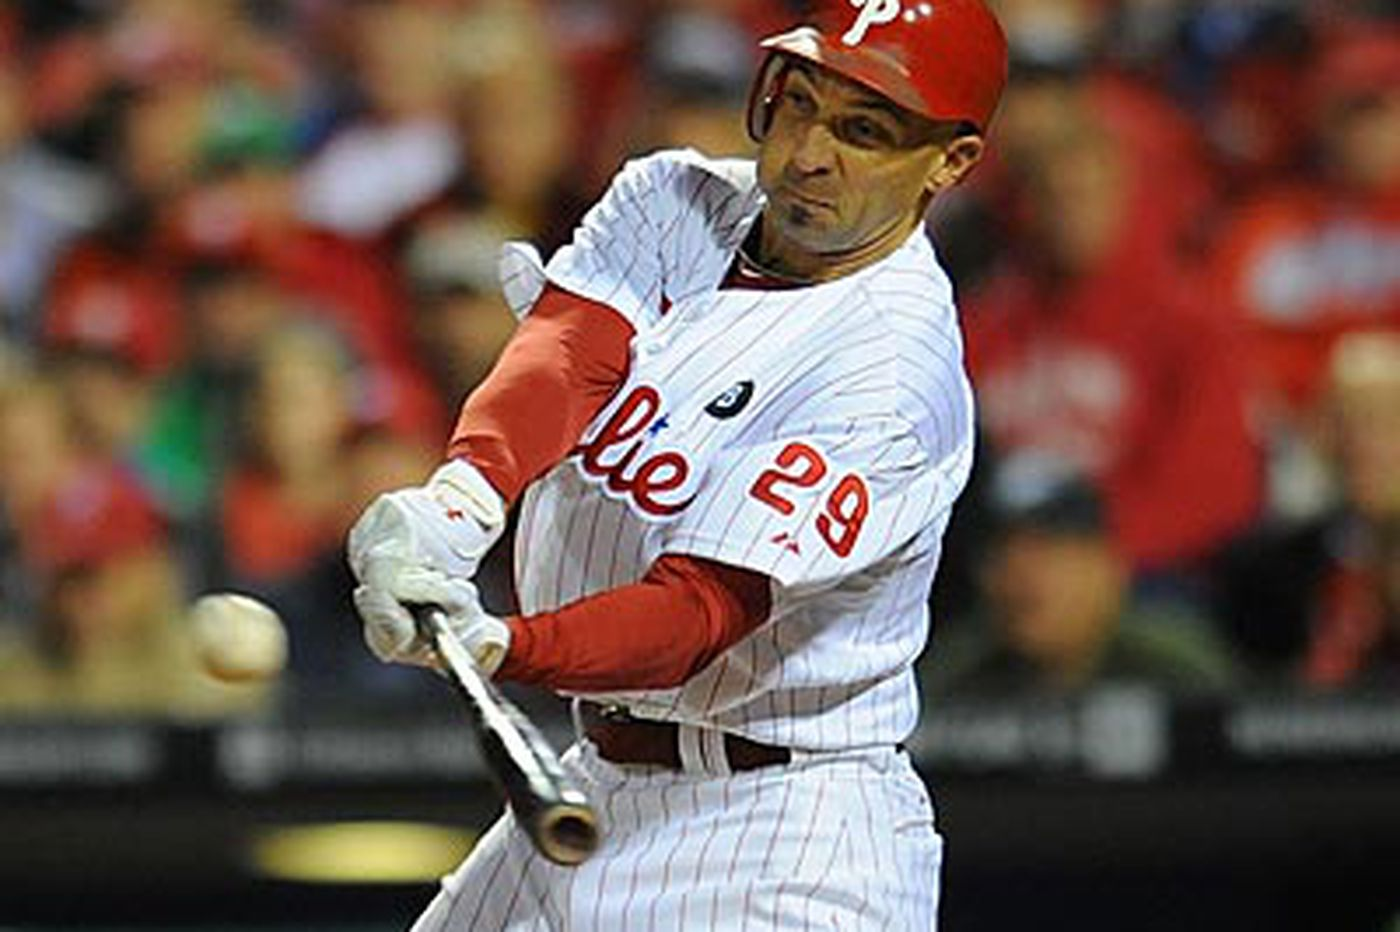 Inside the Phillies: The Yankees' new Mr. October: Ex-Phillie Raul Ibanez